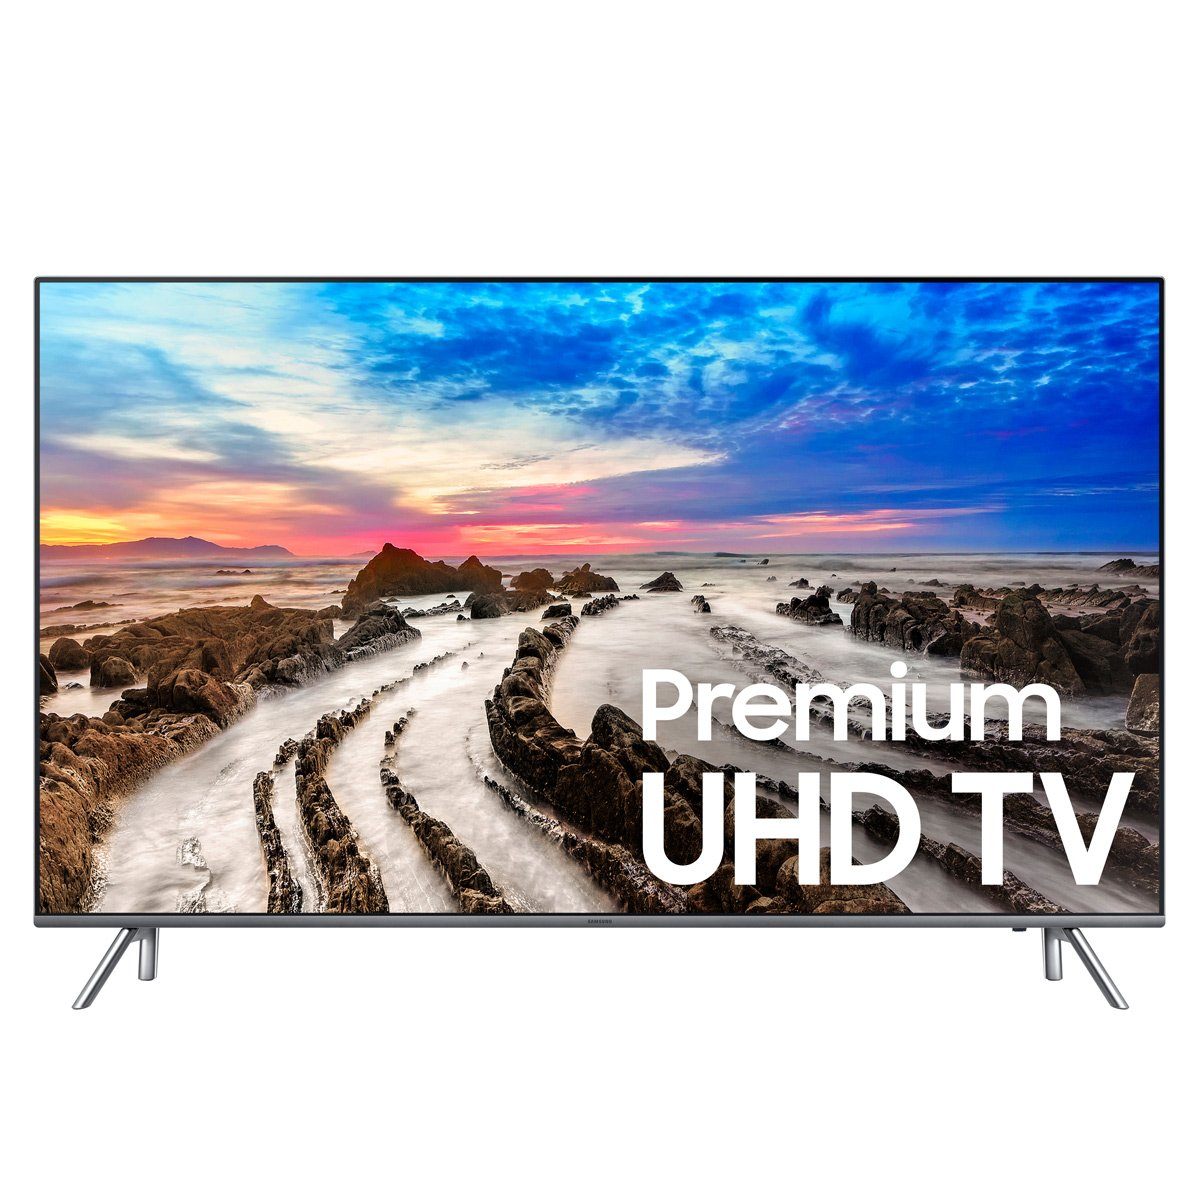 Samsung Electronics UN75MU8000 75-Inch 4K Ultra HD Smart LED TV (2017 Model)